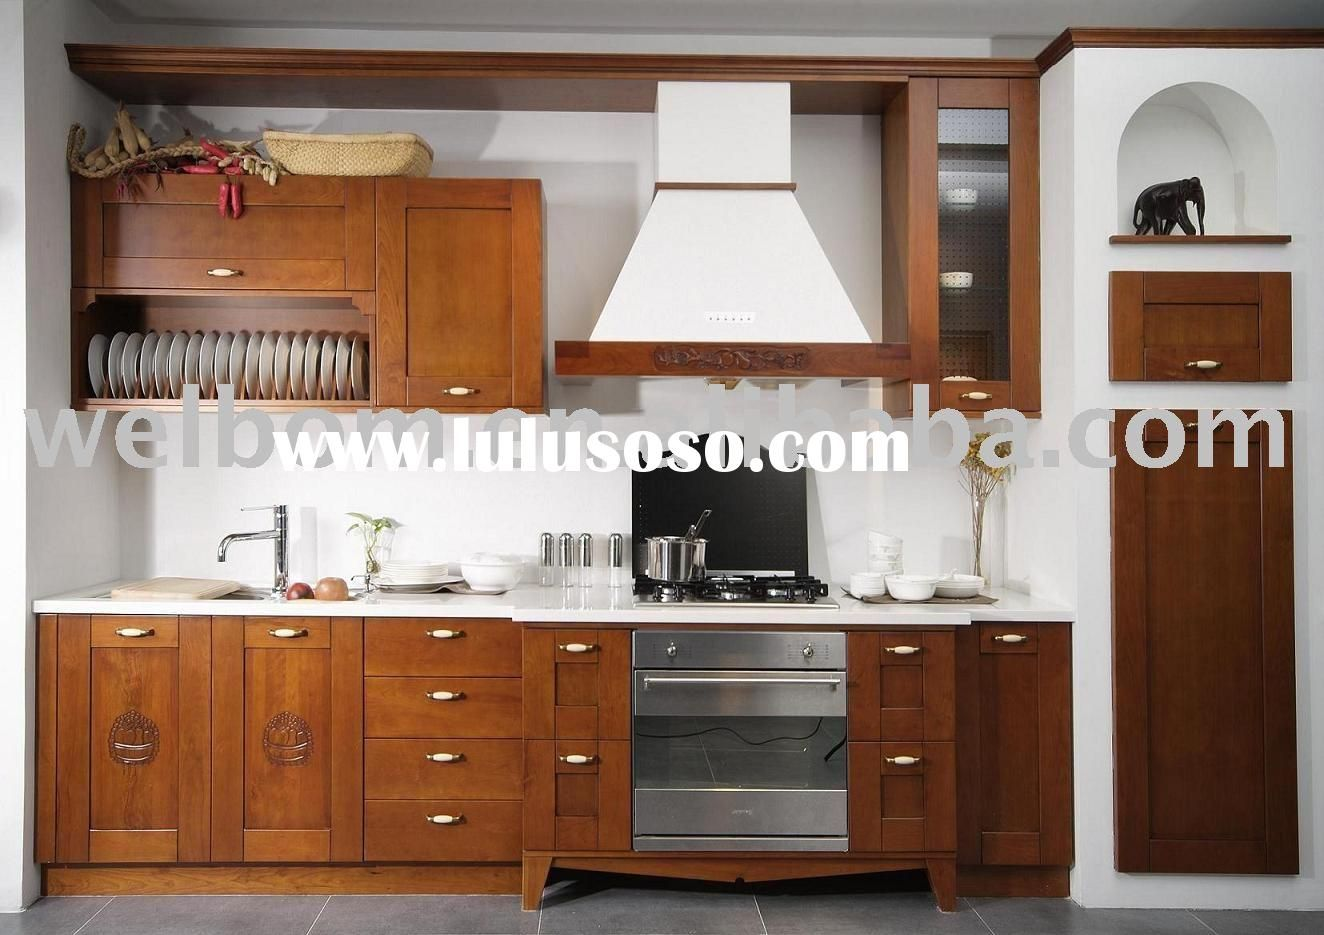 Wood Cabinets With White Countertops Kitchen Cabinets Decor Kitchen Interior Solid Wood Kitchen Cabinets